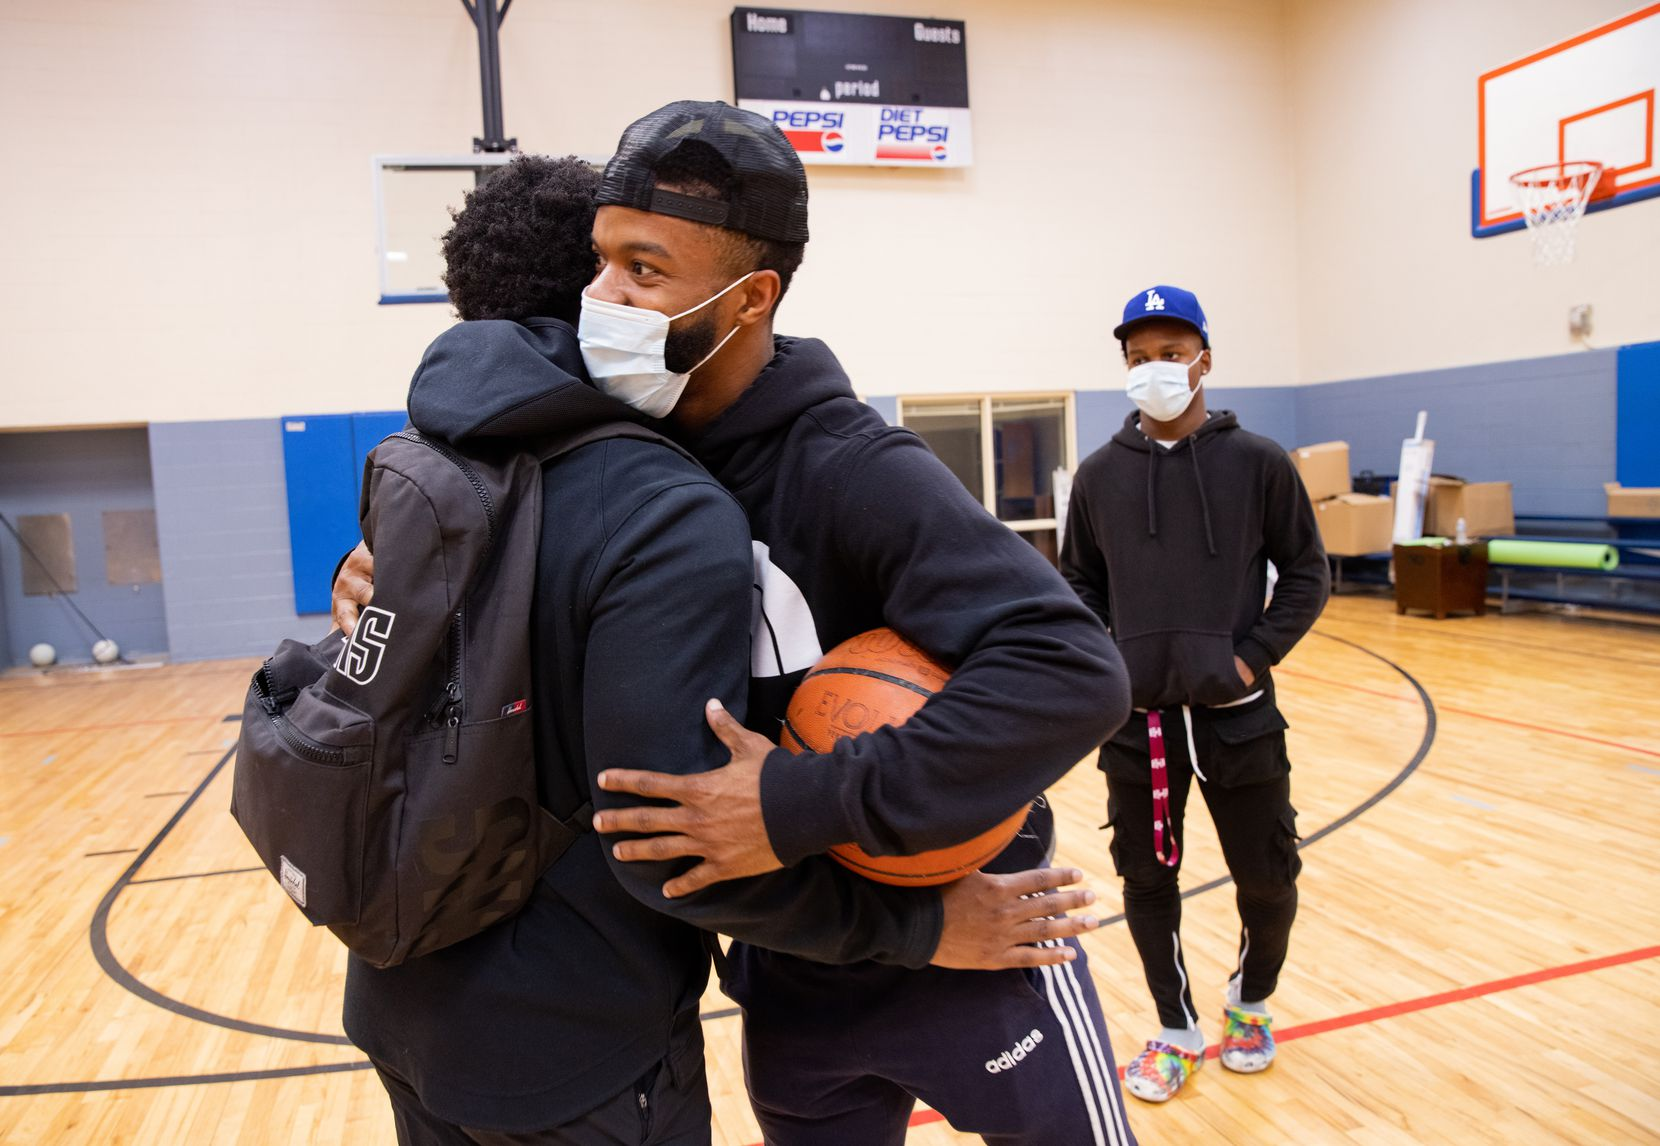 Xavier Henderson, left, For Oak Cliff's director of strategy, greets Frank Byers Jr. in the Moorland gym Friday. Byers, a  Gates Millennium Scholar who attends Texas A&M, said he wholeheartedly believes in what For Oak Cliff is trying to do for his community.